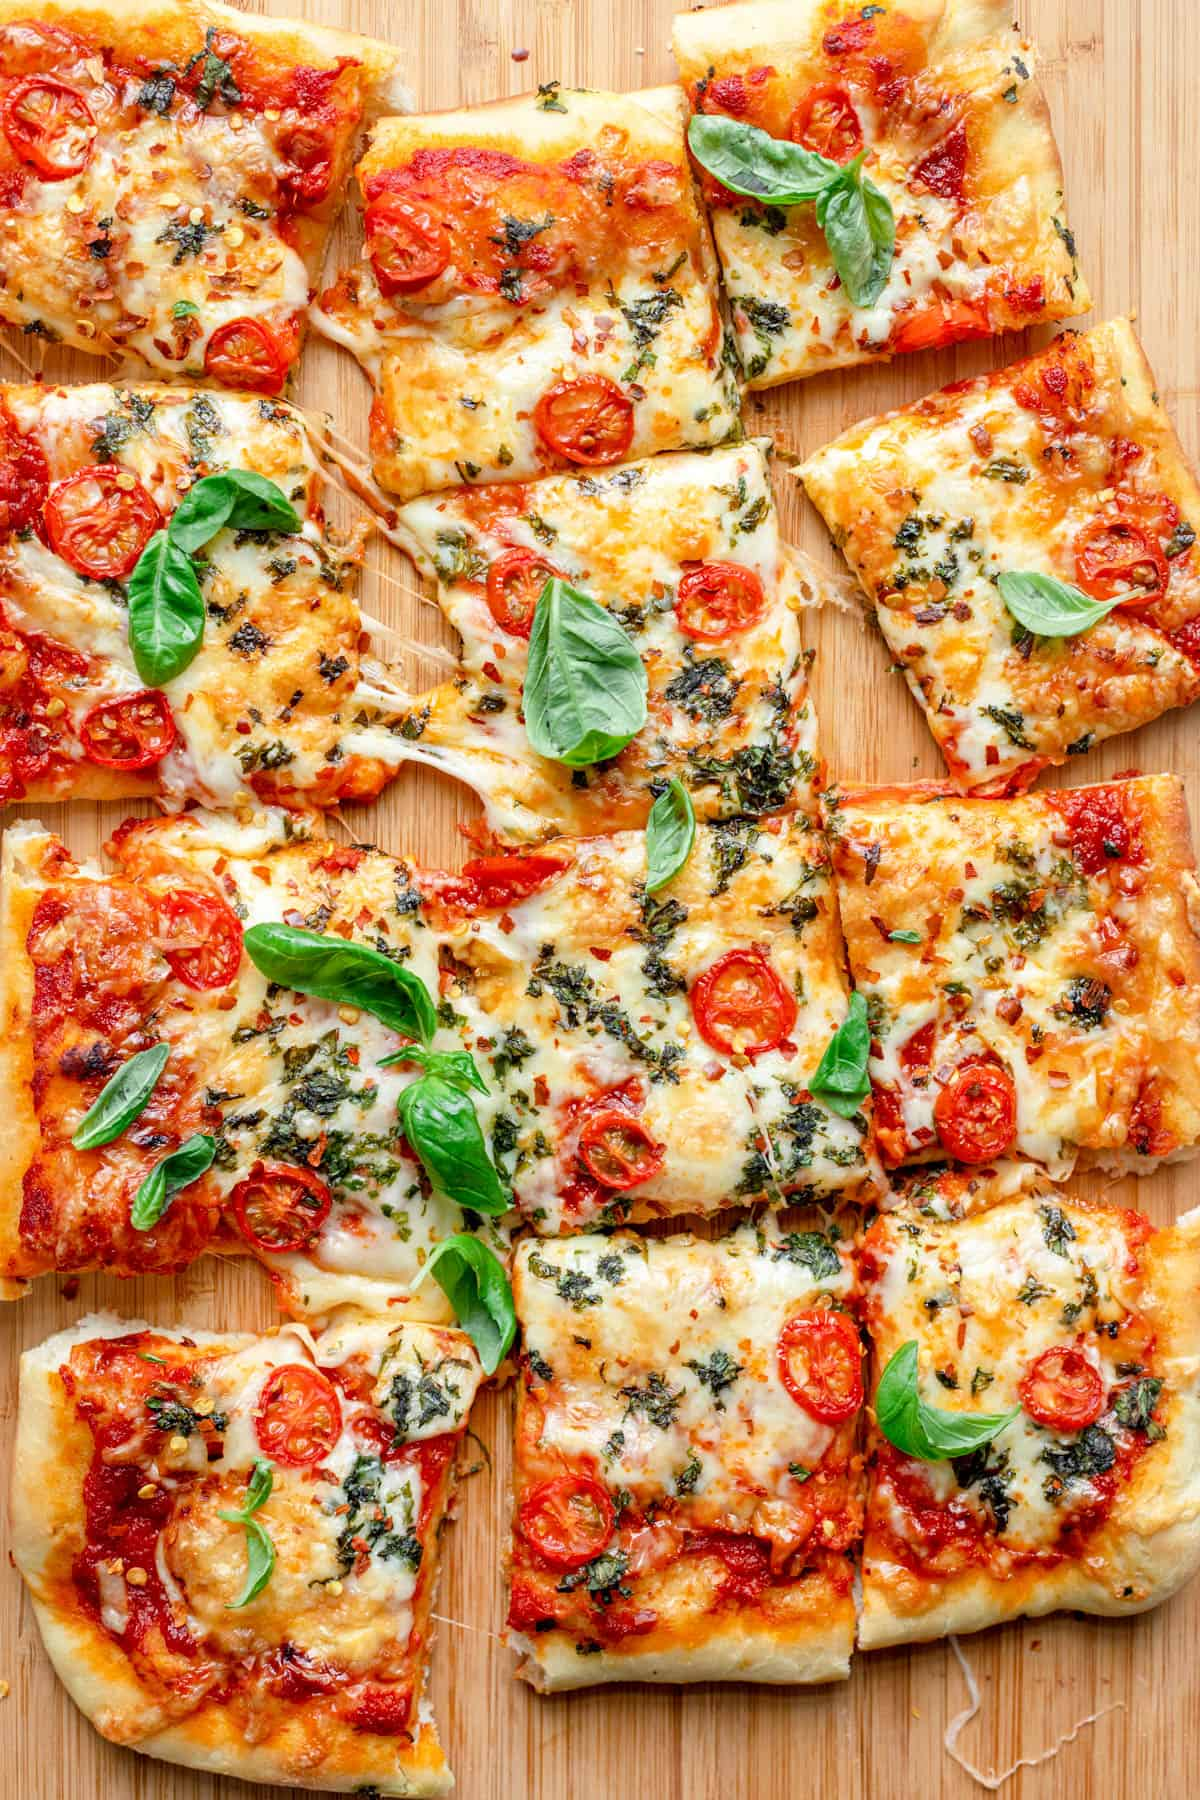 Pizza resting on wooden board, sliced into 12 pieces